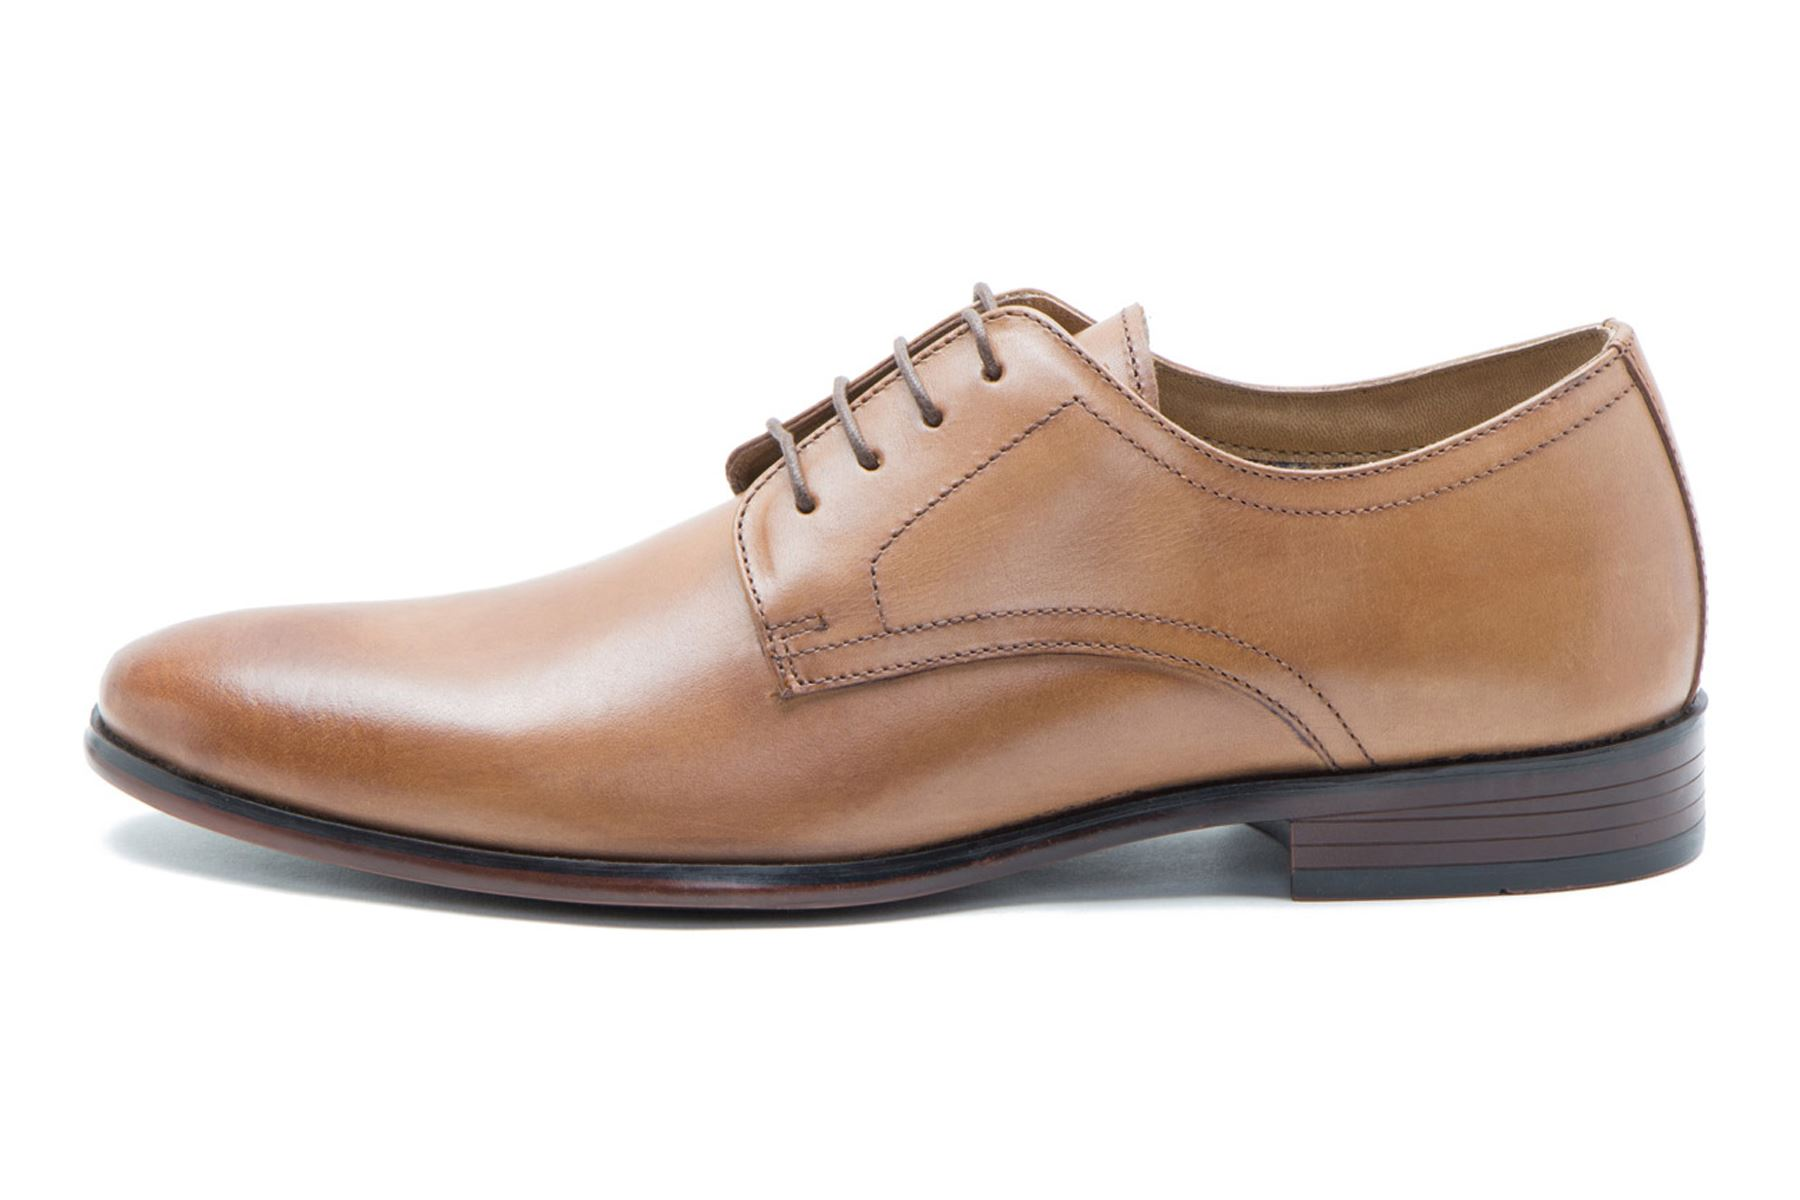 silwood lace up mens formal casual oxford shoes